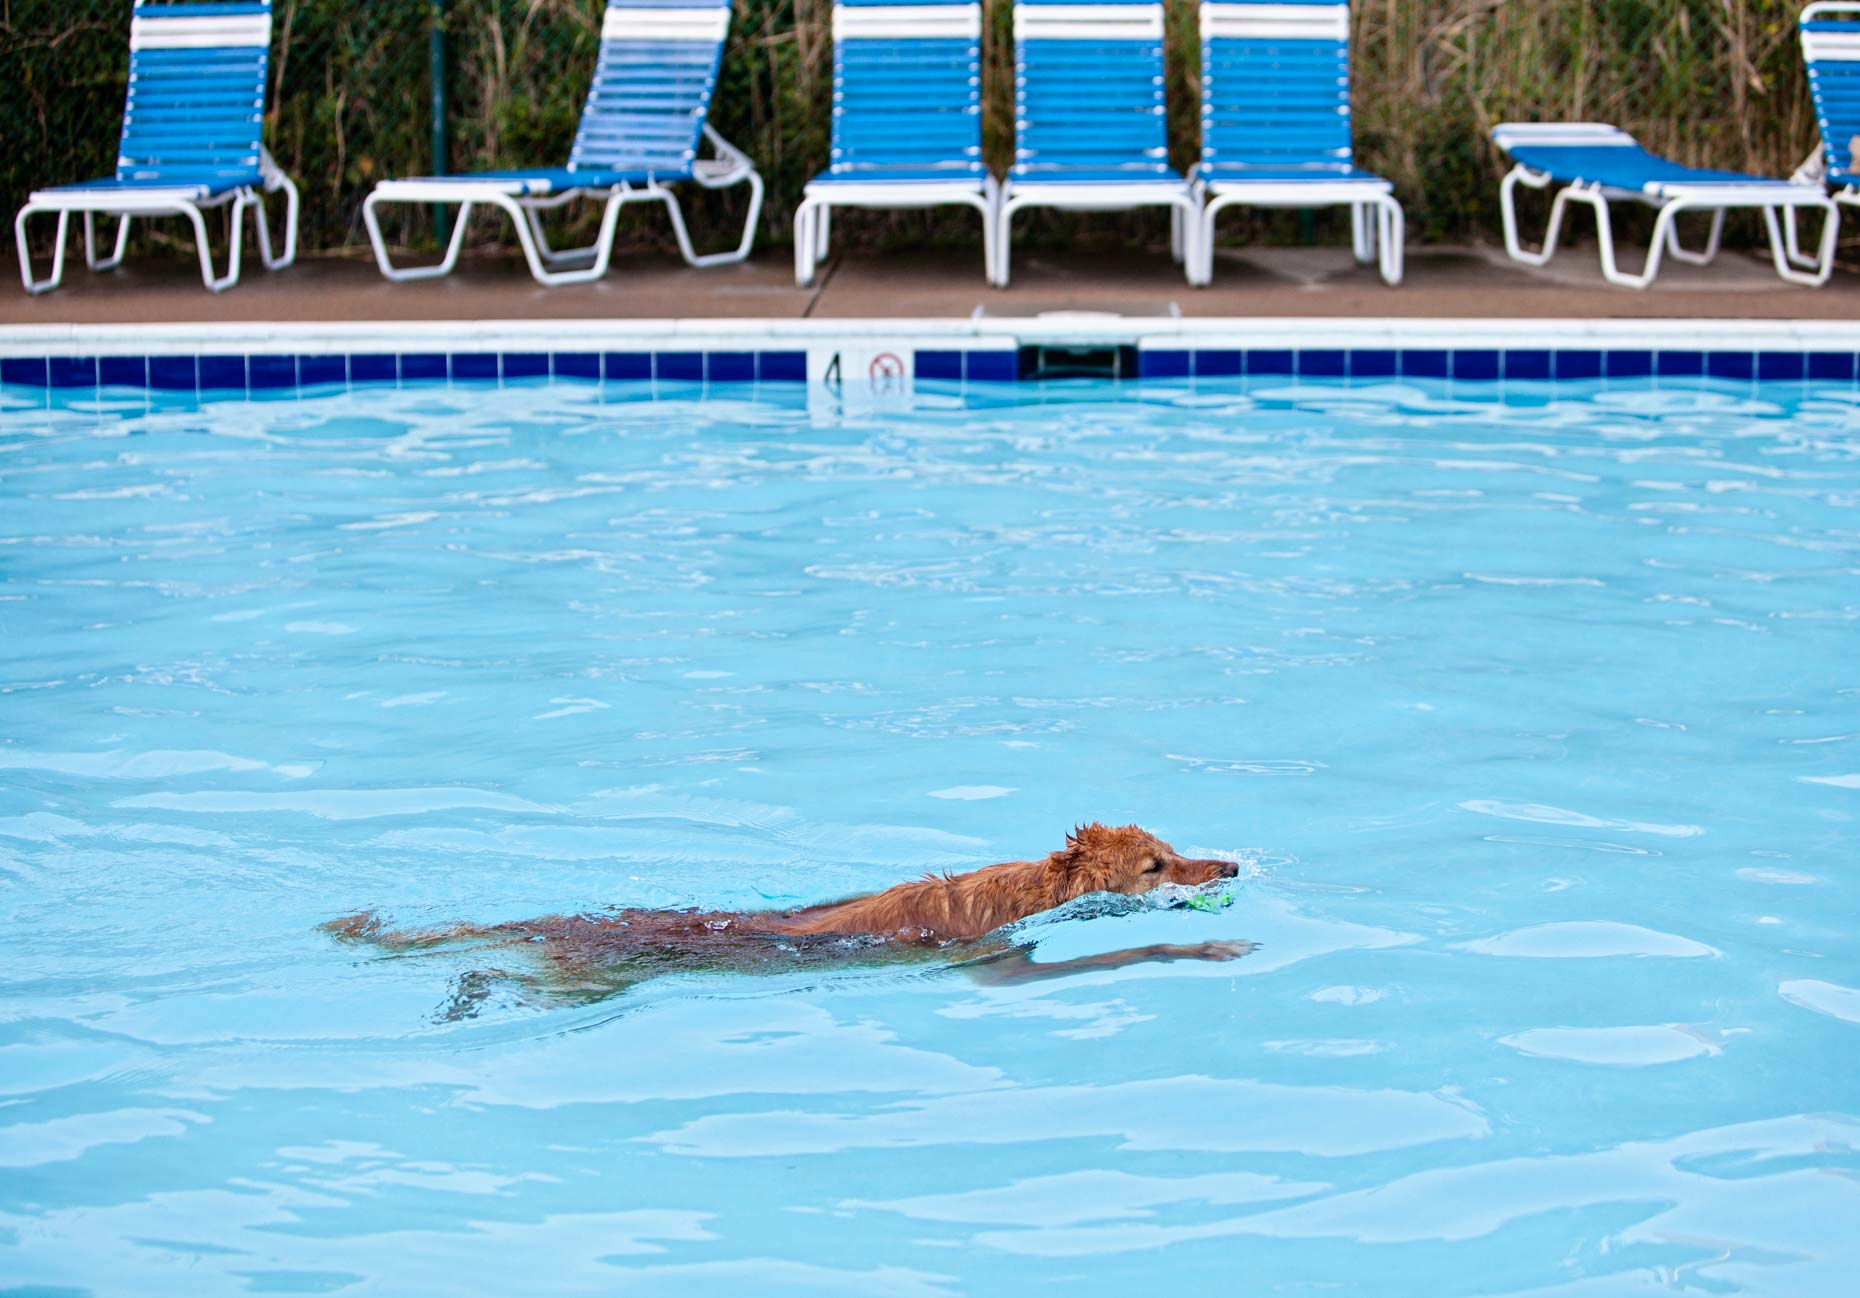 Pool Dog in Virginia | Commercial + Lifestyle Dog Photographer | Hannele Lahti